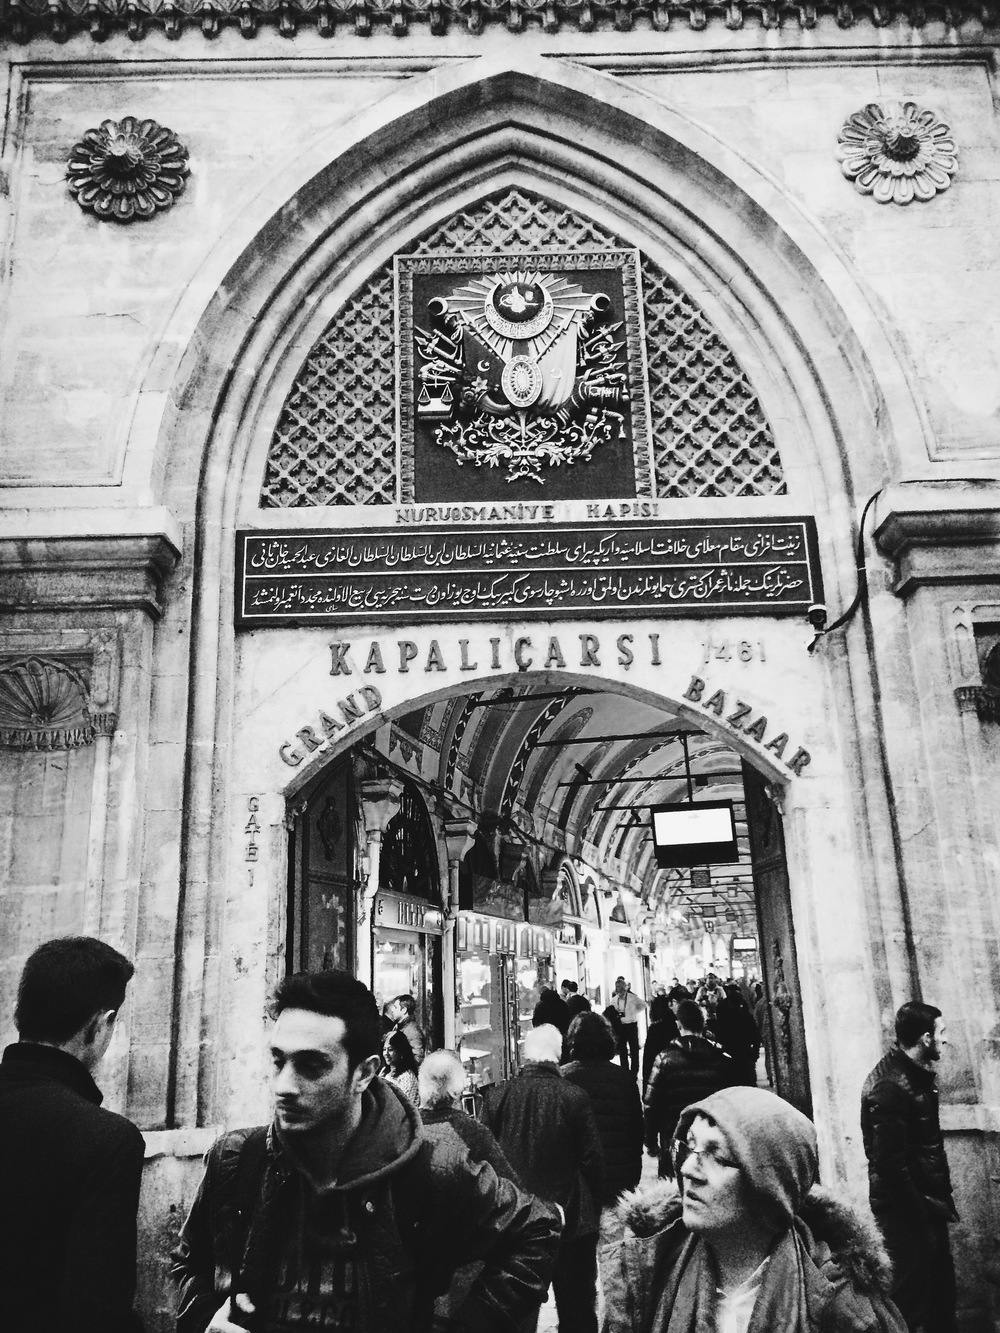 The grandest of all, the Grand Bazaar entrance. It goes through another mosque, Nurosmaniye Cami. A fascinating study of human character if only you are allowed the peace and time to do so amidst being constantly being accosted. It is a labyrinth inside with tunnels trailing away from main causeway. The ceiling is resplendent and richly painted in gorgeous Ottoman designs and it dates back to the original reliefs.